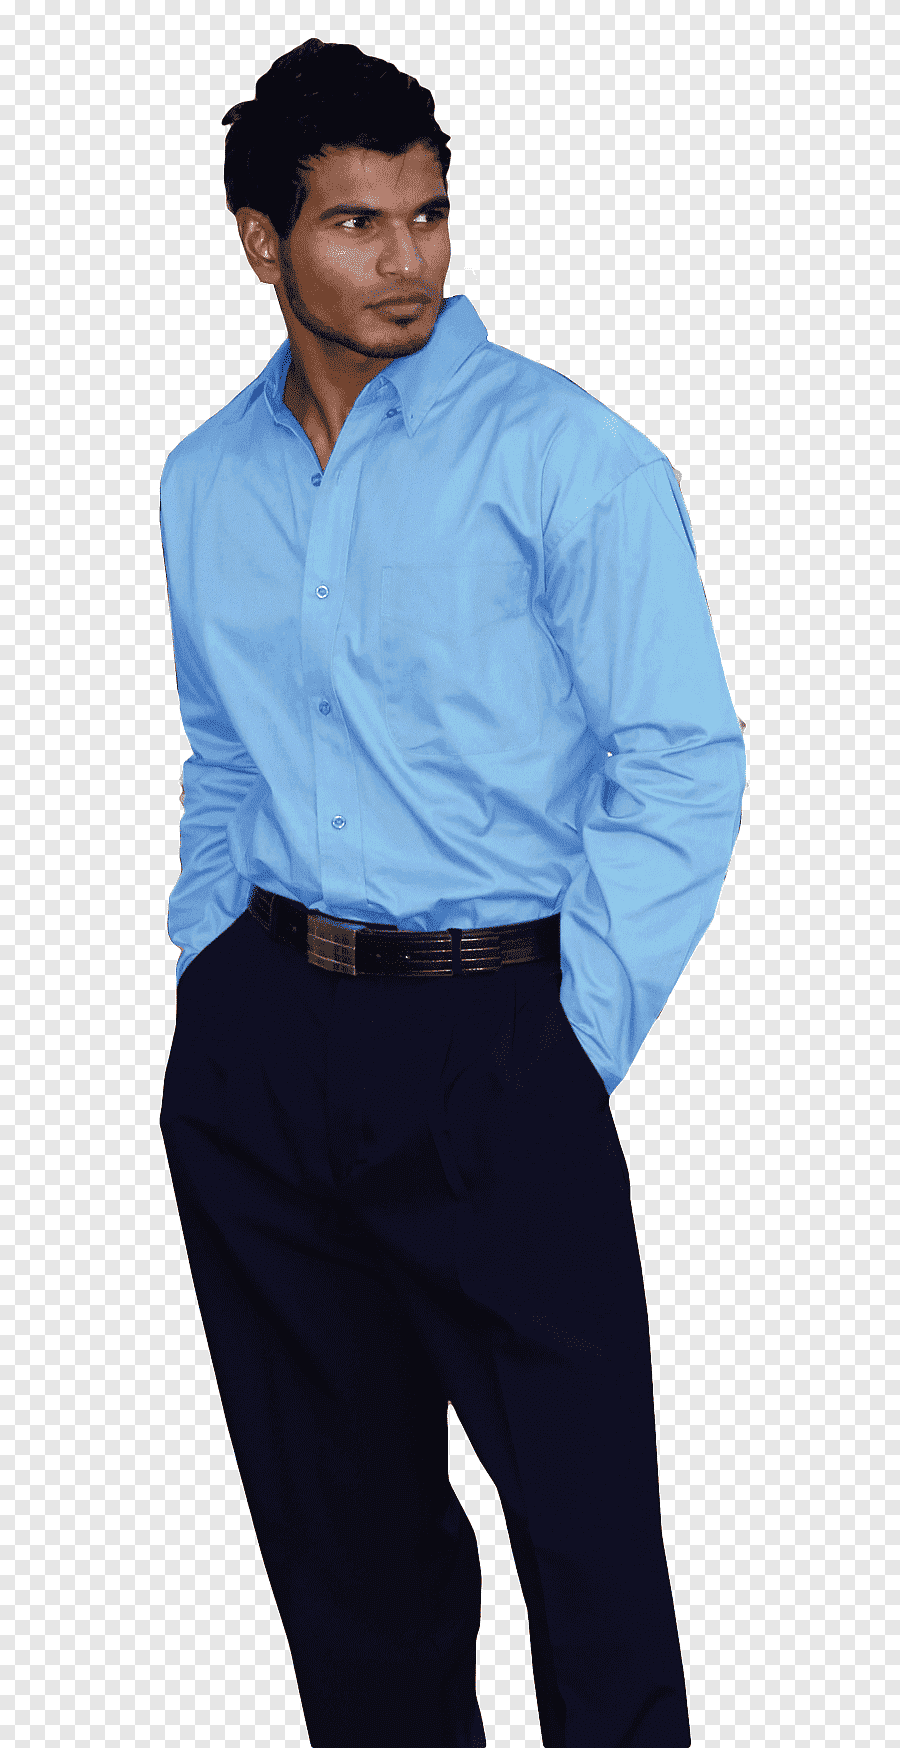 Pin By Ranjeetsur On Ranjeetsur Suits Clothing Blue Shirt Dress Shirt Outfit [ 1748 x 900 Pixel ]